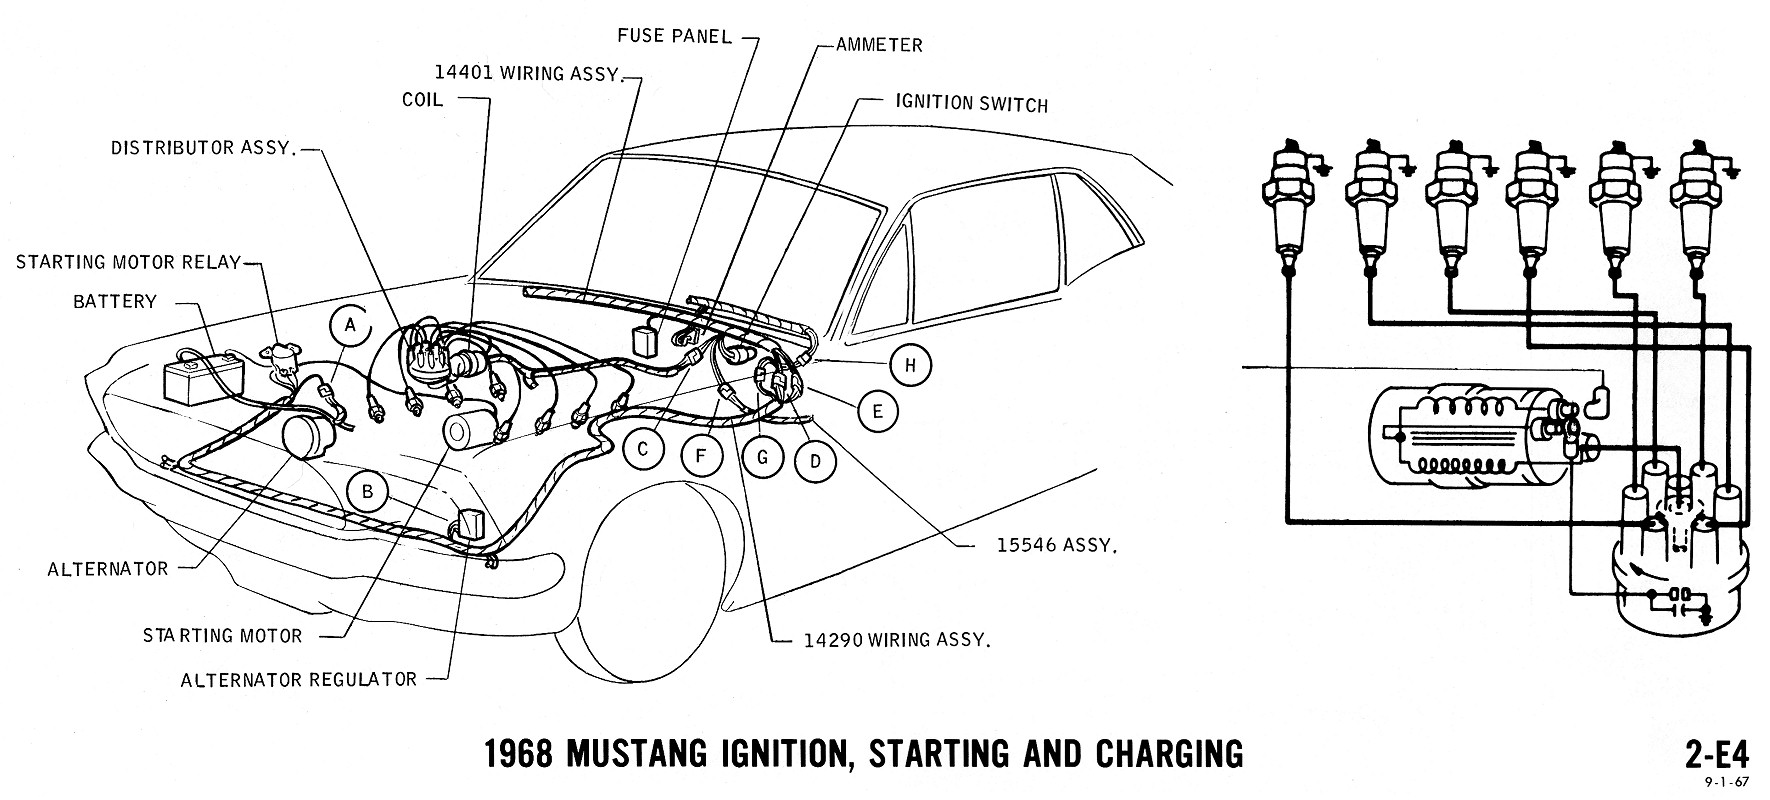 1968 mustang wiring diagram ignition starting charging 2 1968 mustang wiring diagrams and vacuum schematics average joe 67 mustang complete wiring harness at gsmx.co